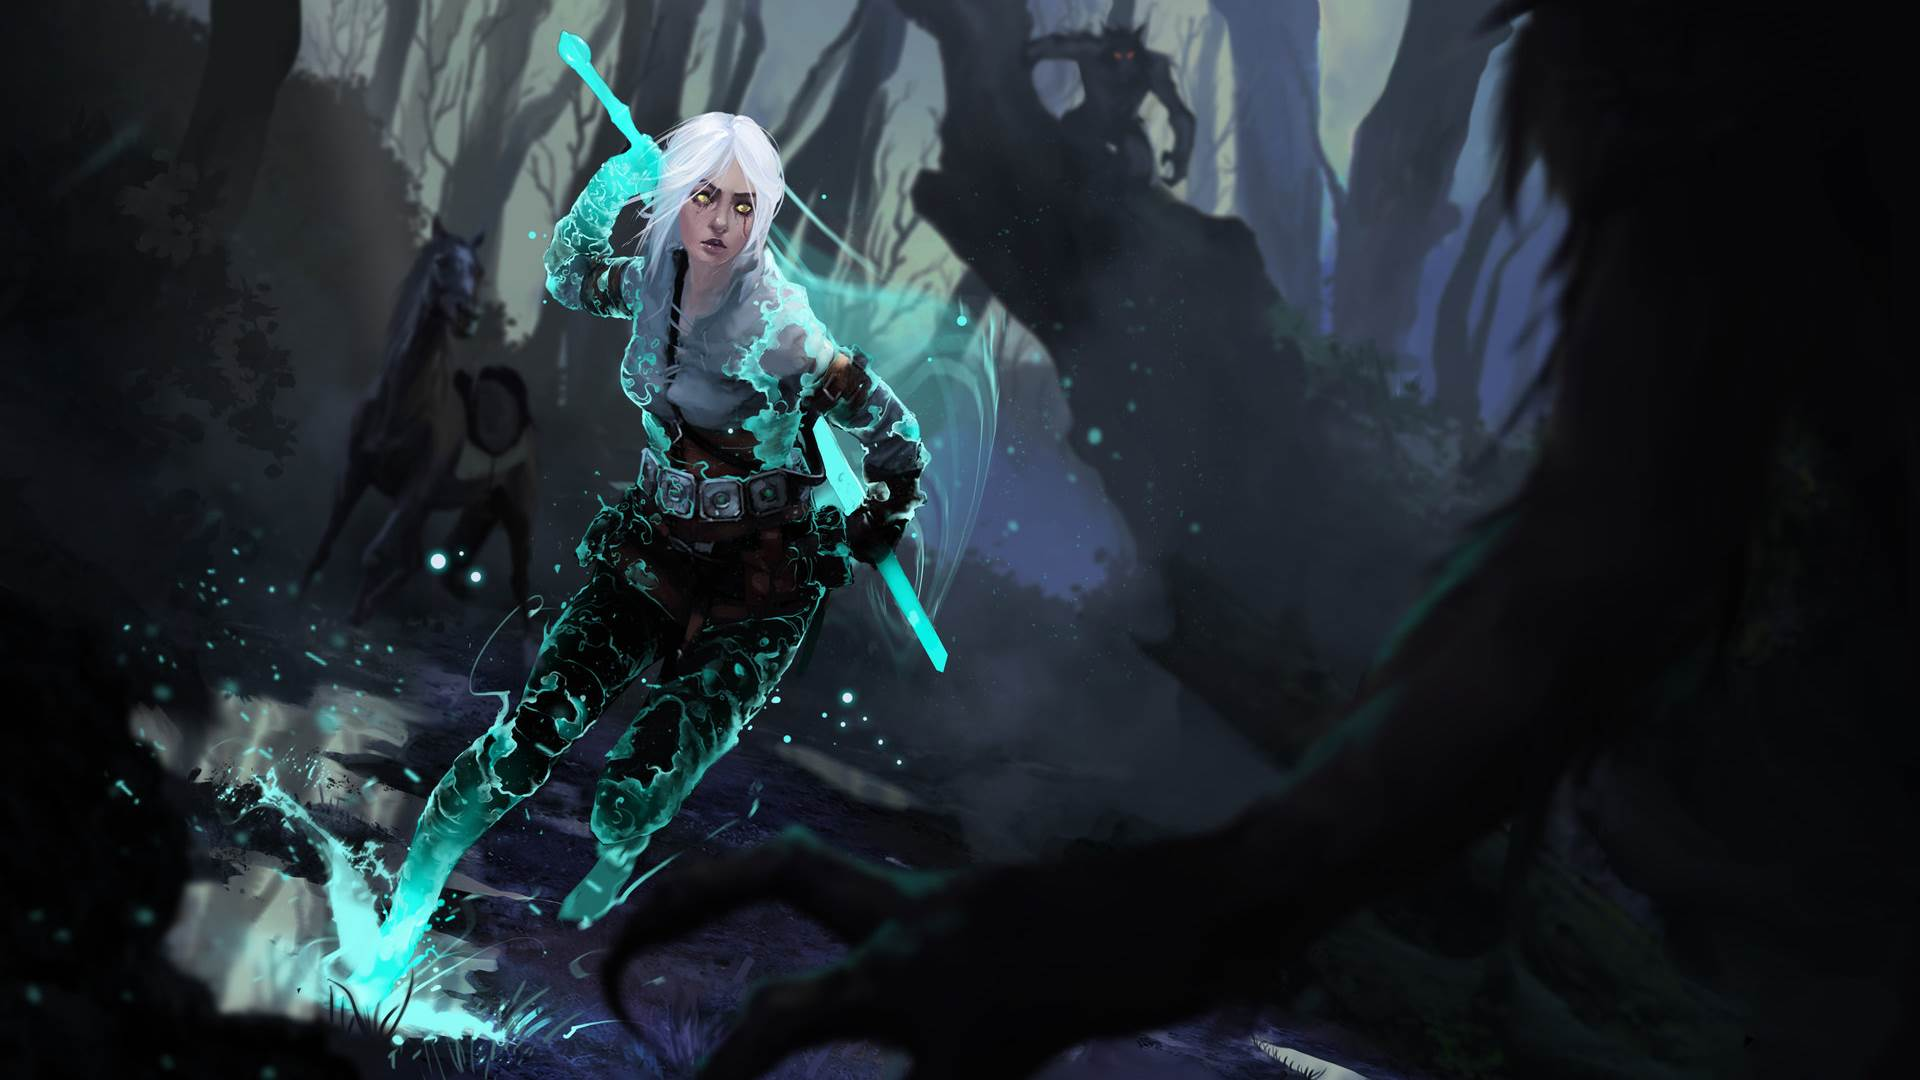 witcher 3 wallpaper 70 wallpapers � adorable wallpapers